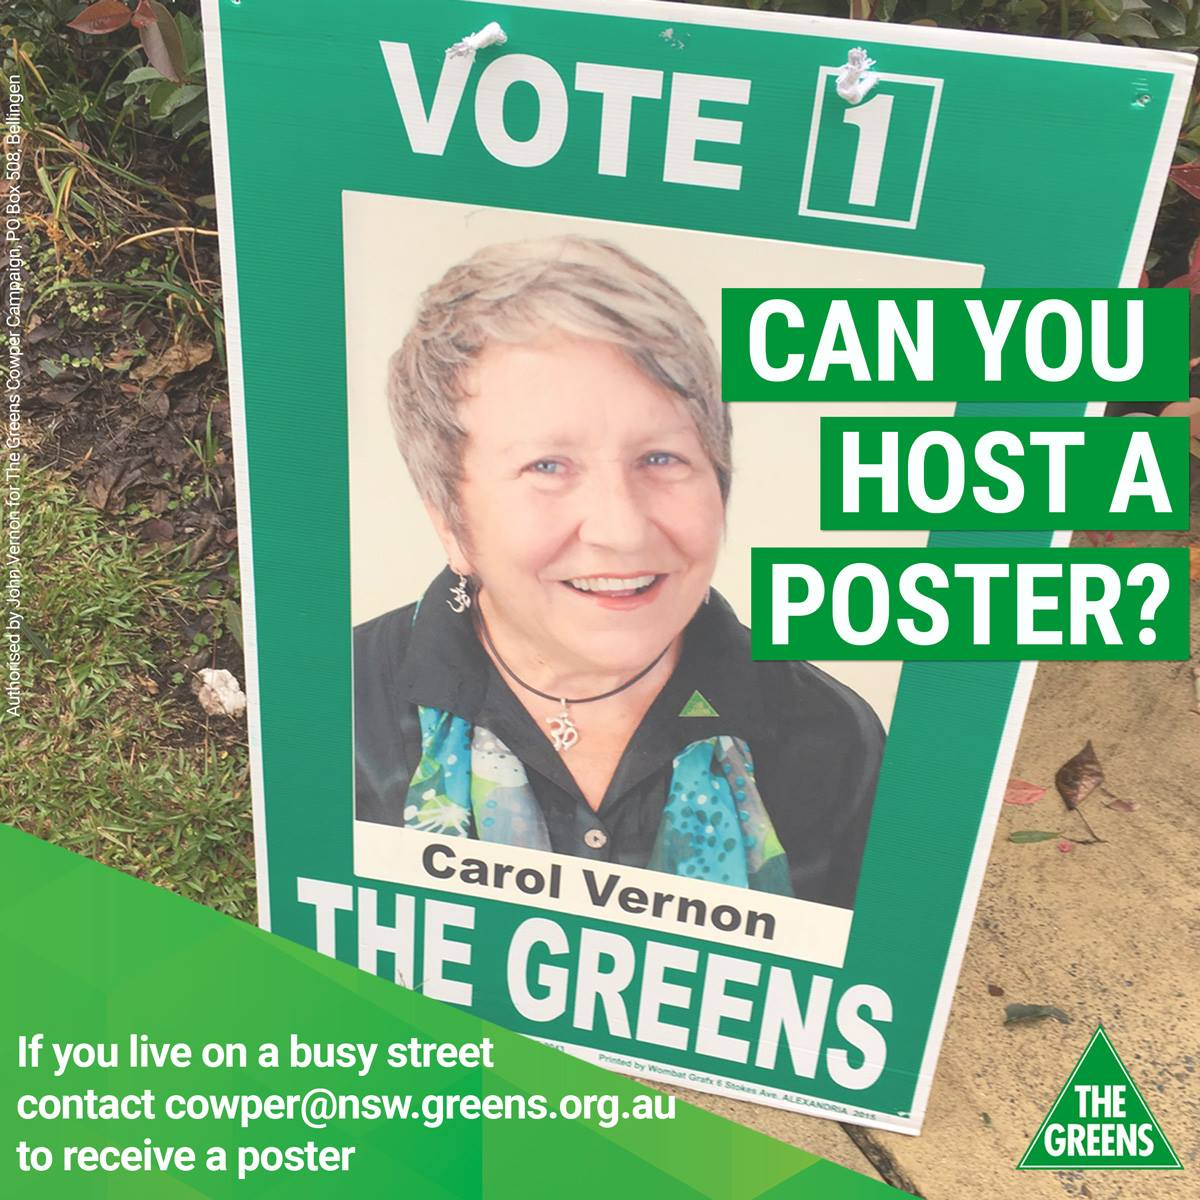 Host A Poster